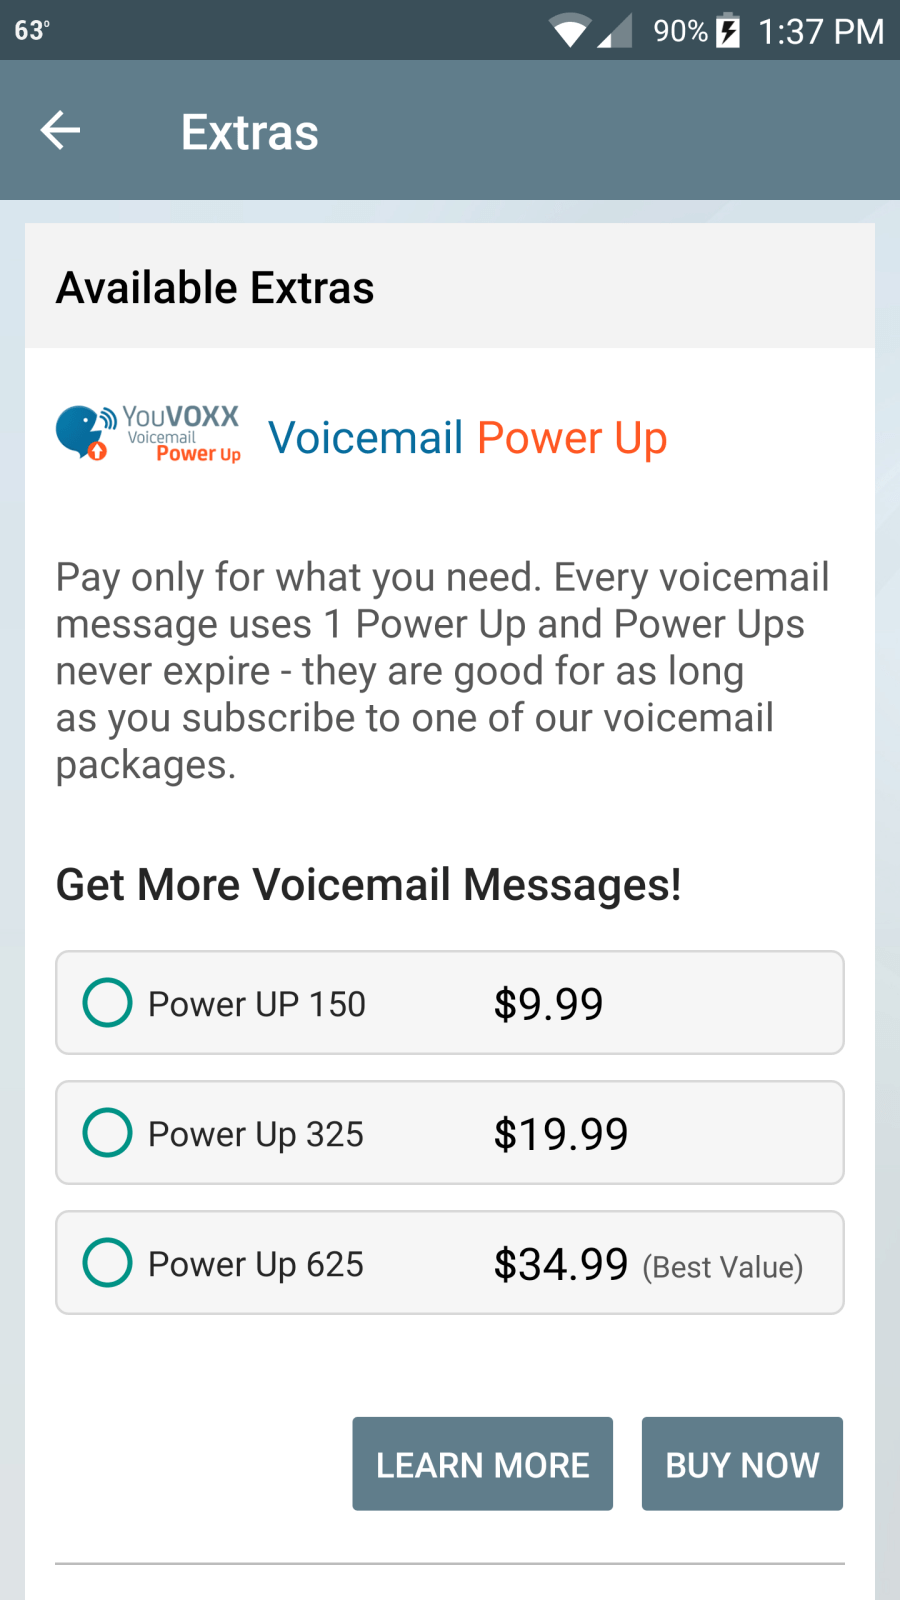 VOICEMAIL POWER-UPS